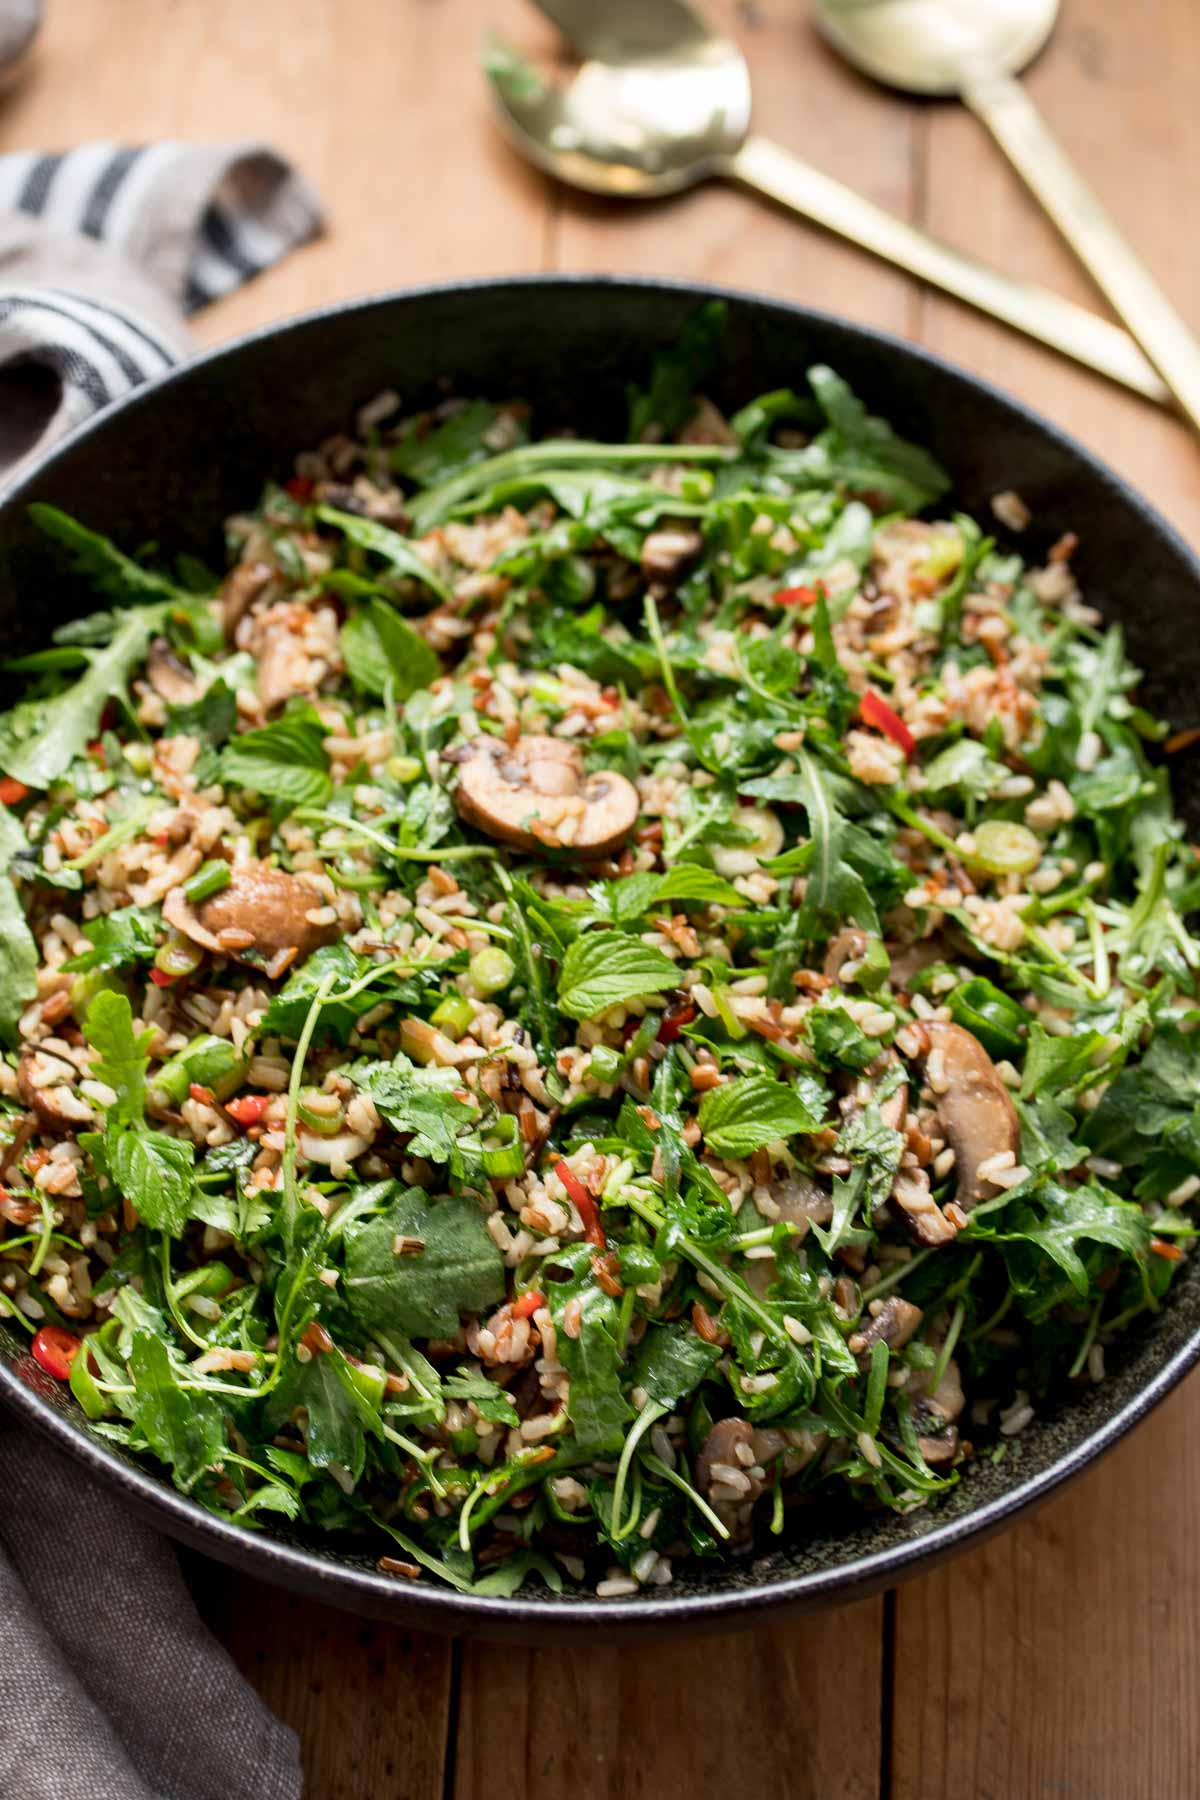 Wild Rice Salad with Mushrooms and Herbs